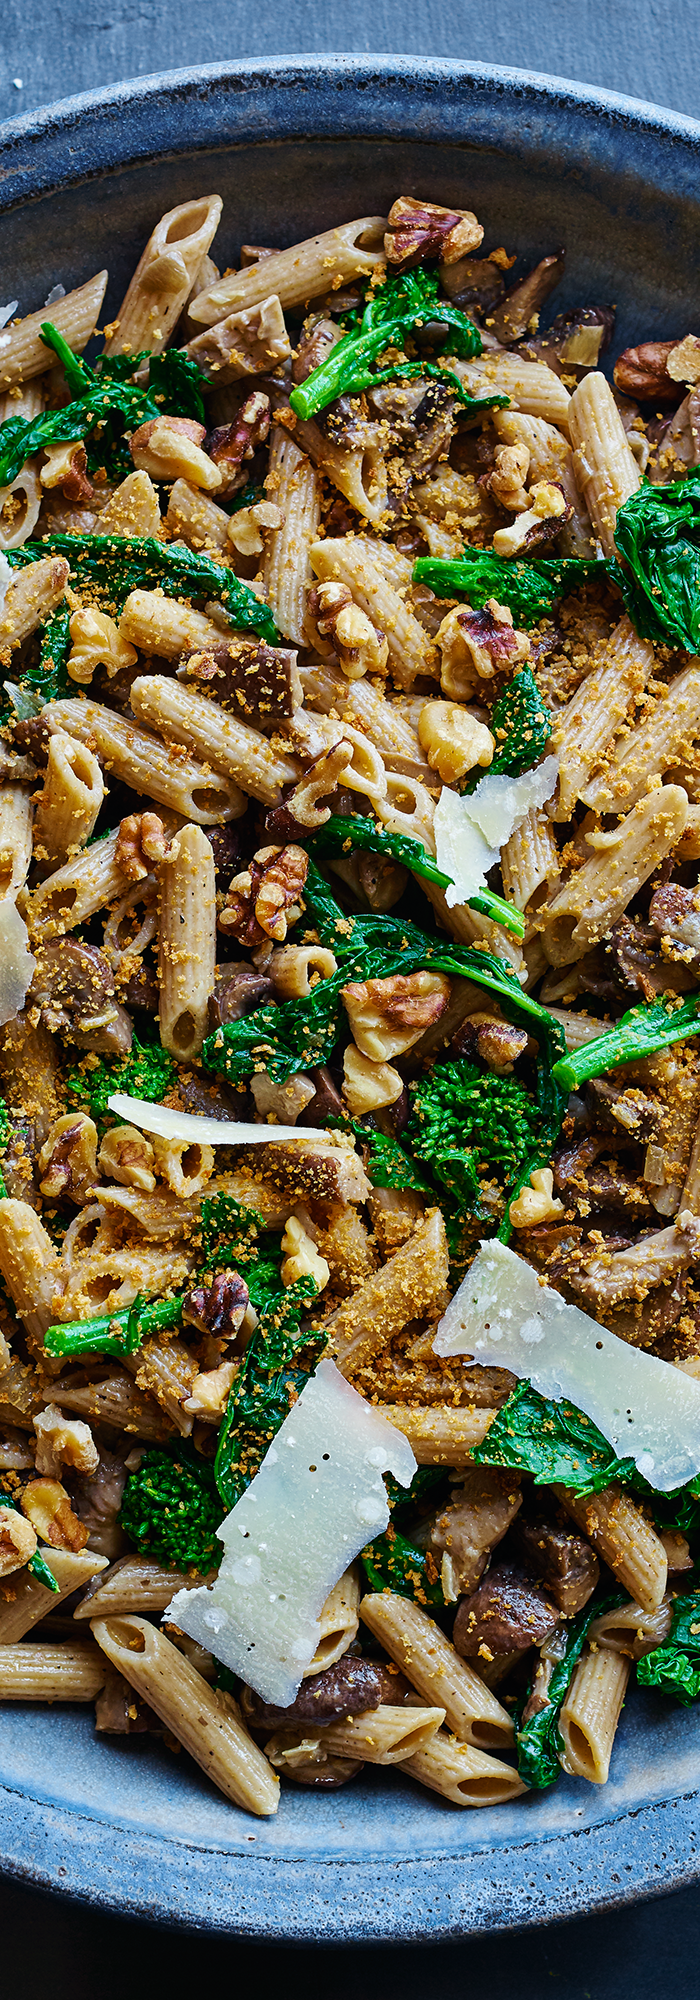 Penne Pasta with Broccoli Rabe and Mushrooms